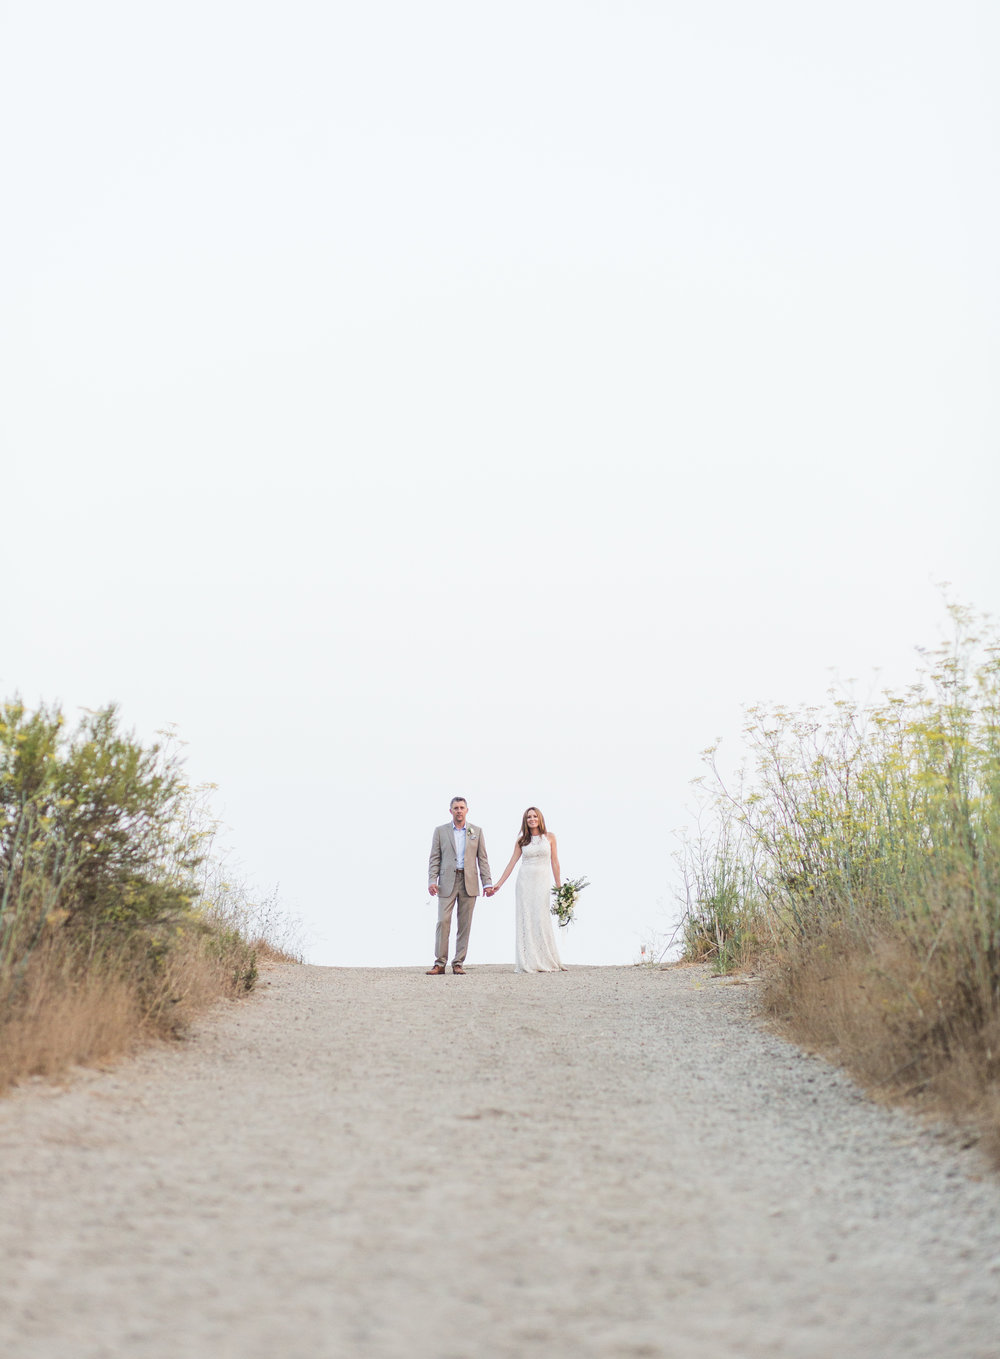 santa-barbara-elopement-elope-wedding-planner-coordinator-coordination-day-of-intimate-rustic-ellwood-bluffs-forest-beach-ocean-view-green-white-event (21).jpg